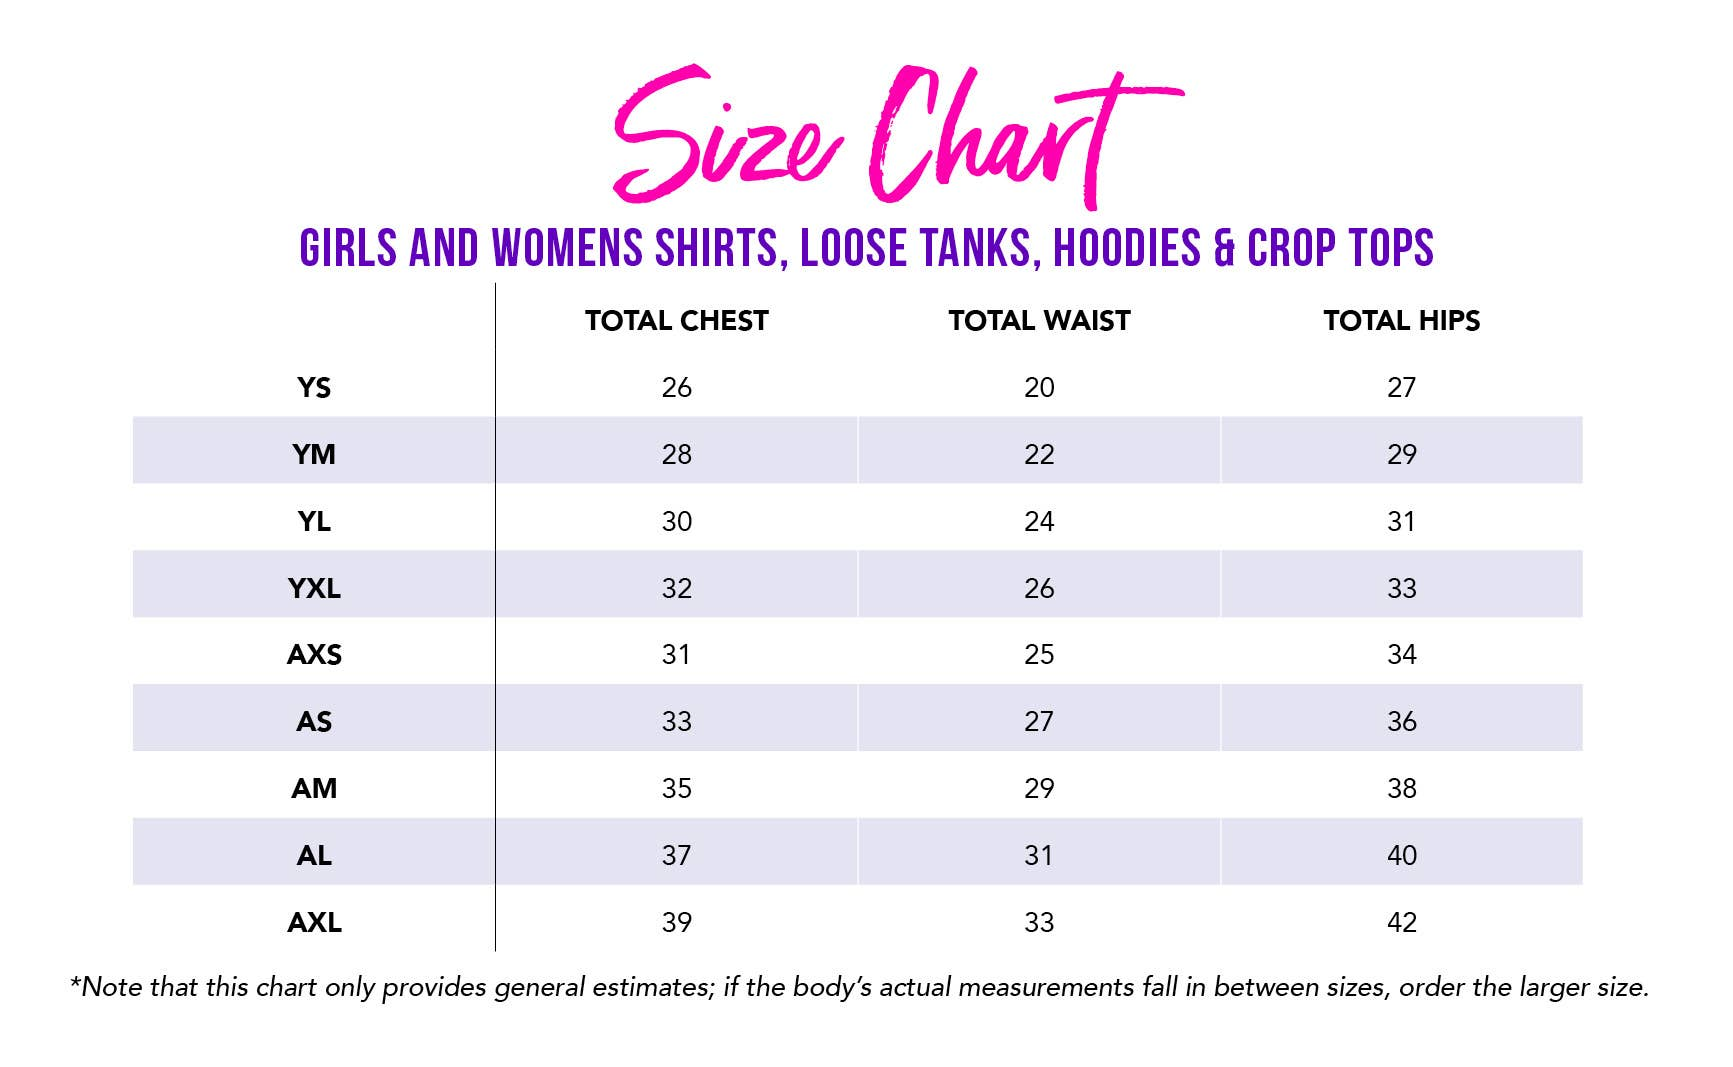 Girls and Women's Shirt Size Chart